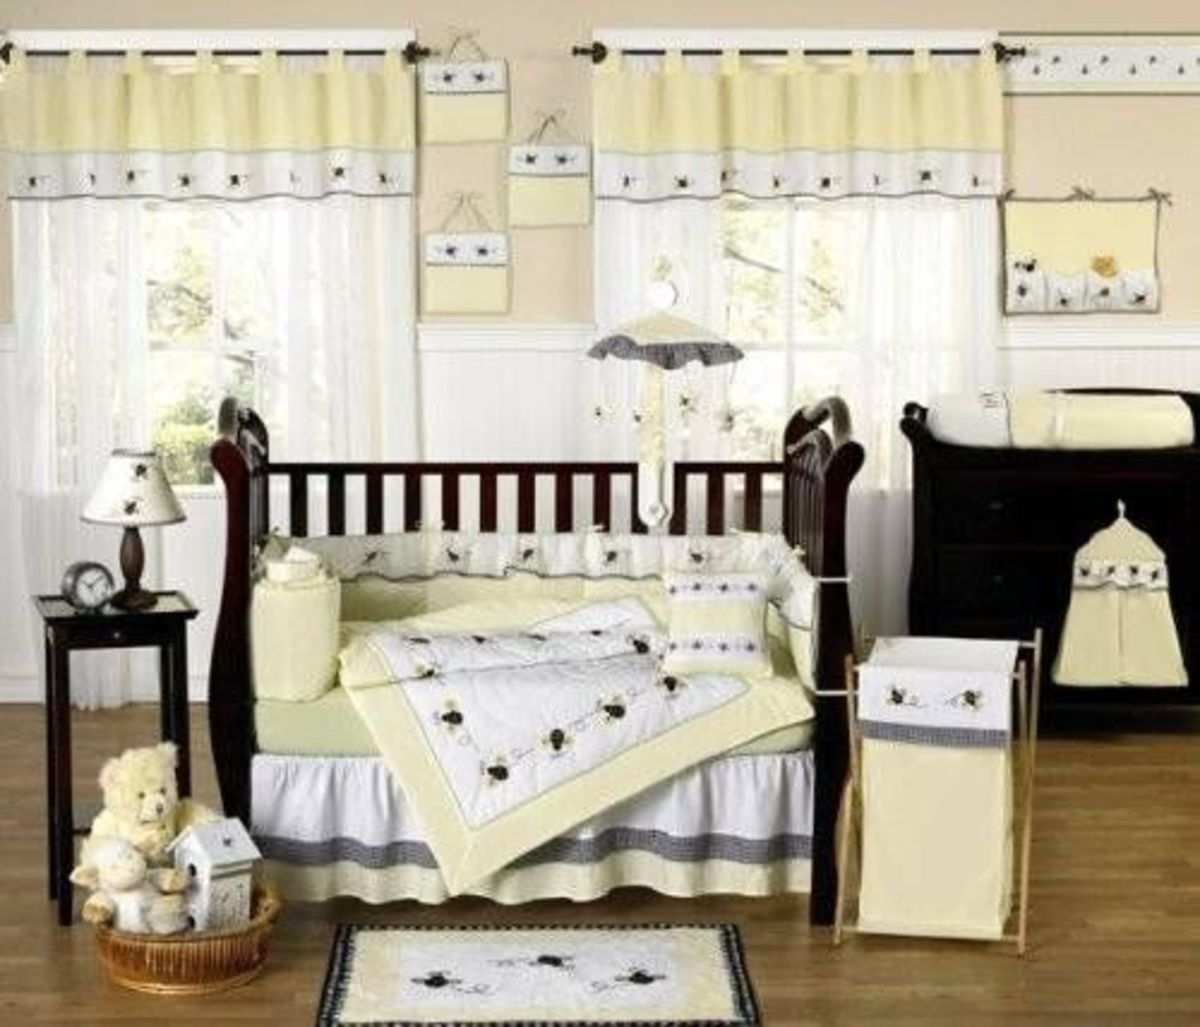 JoJo Designs 9-Piece Baby Designer Crib Bedding Set - Bumble Bee